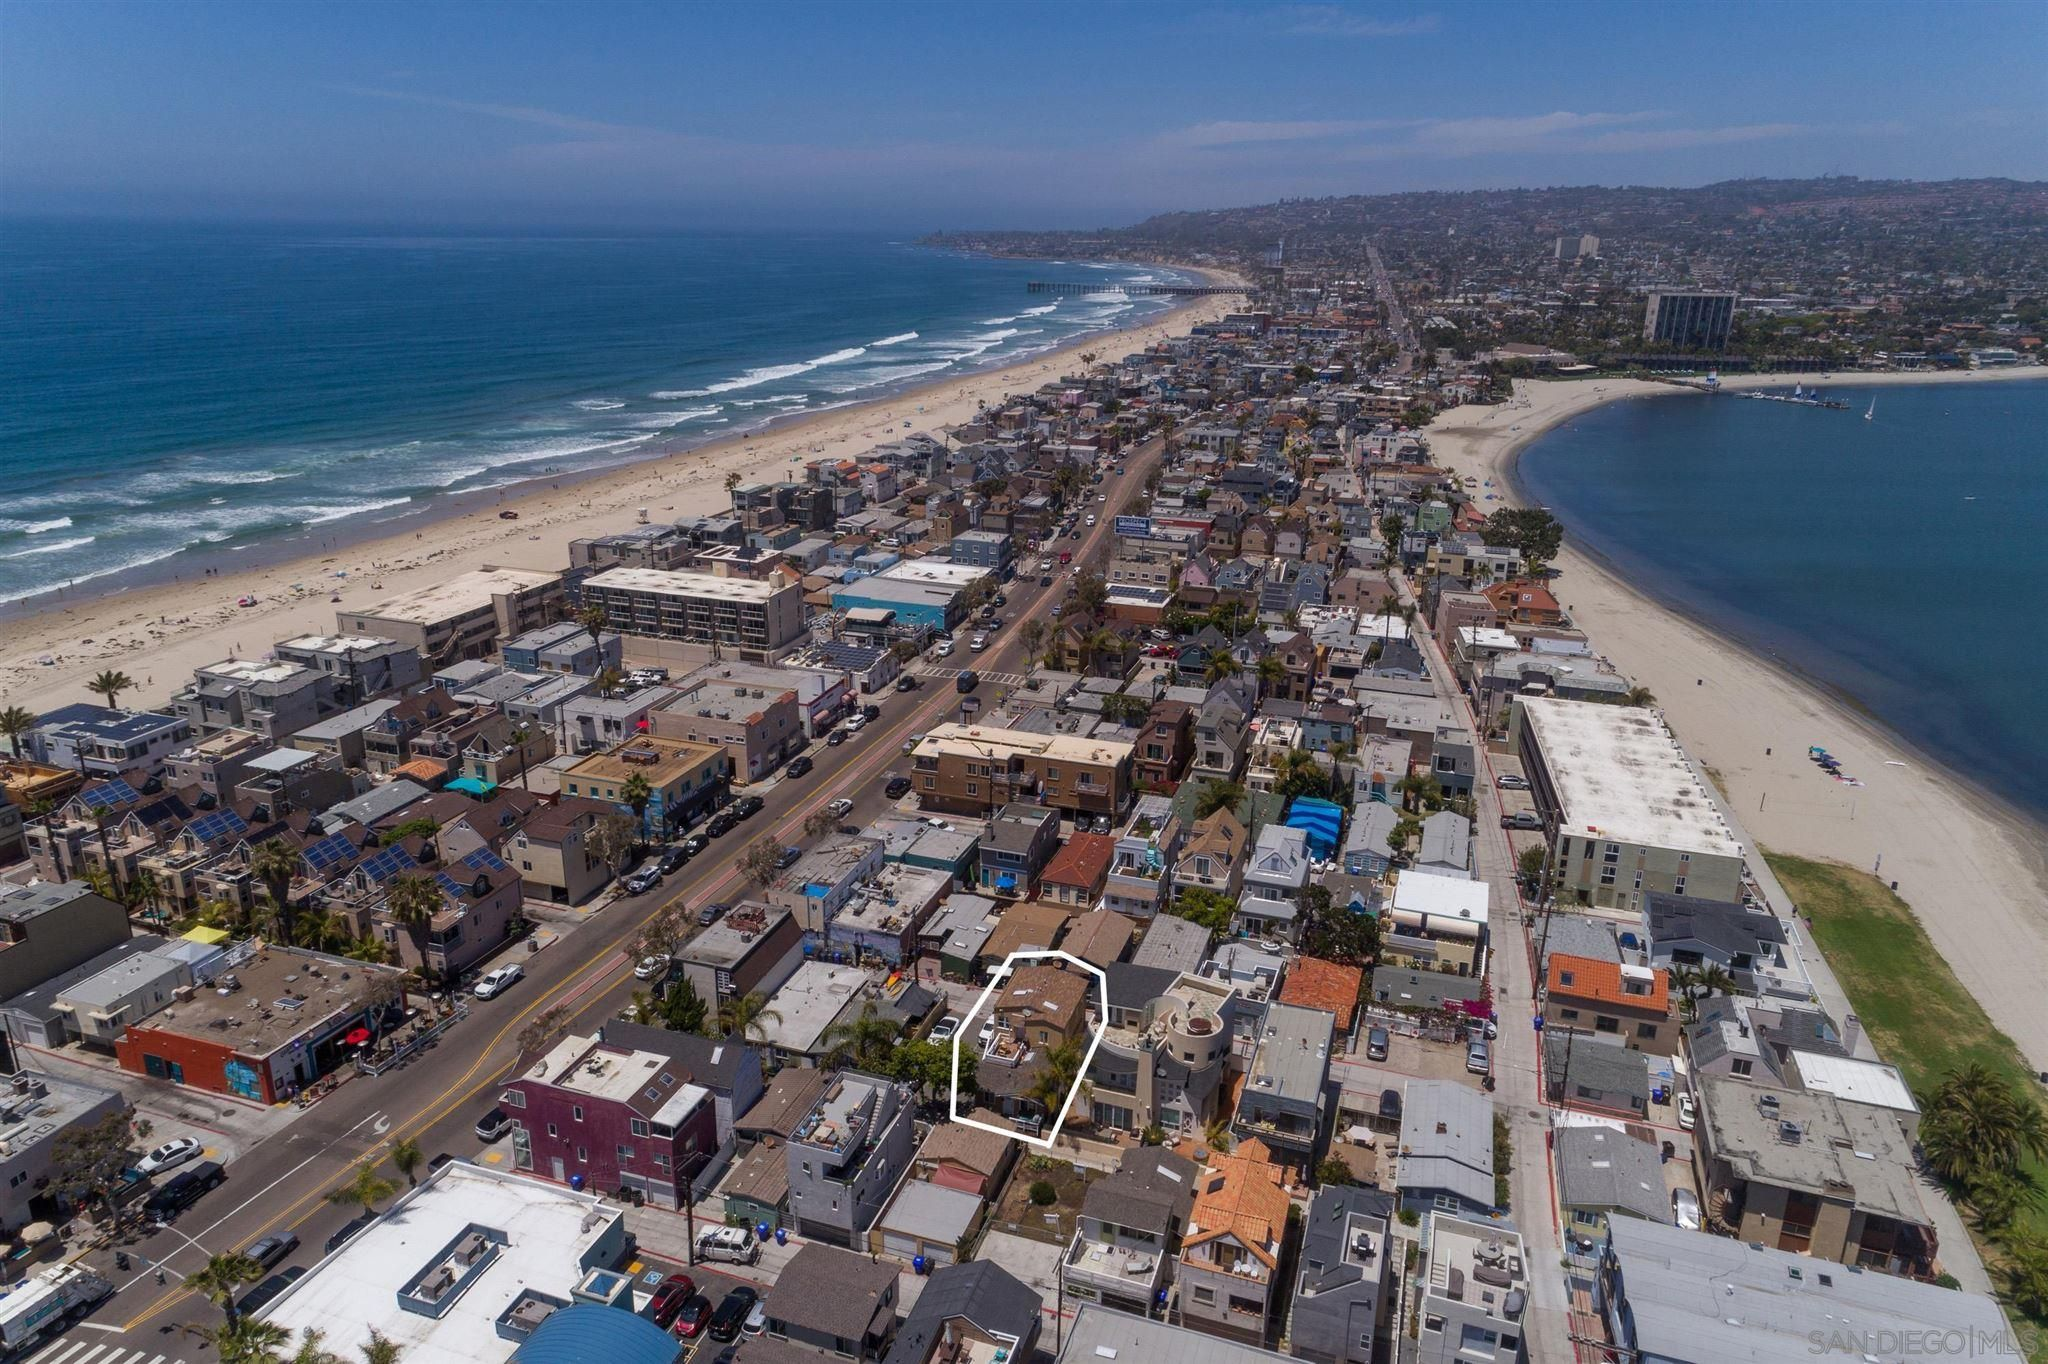 Main Photo: MISSION BEACH Property for sale: 818-820 Portsmouth in San Diego